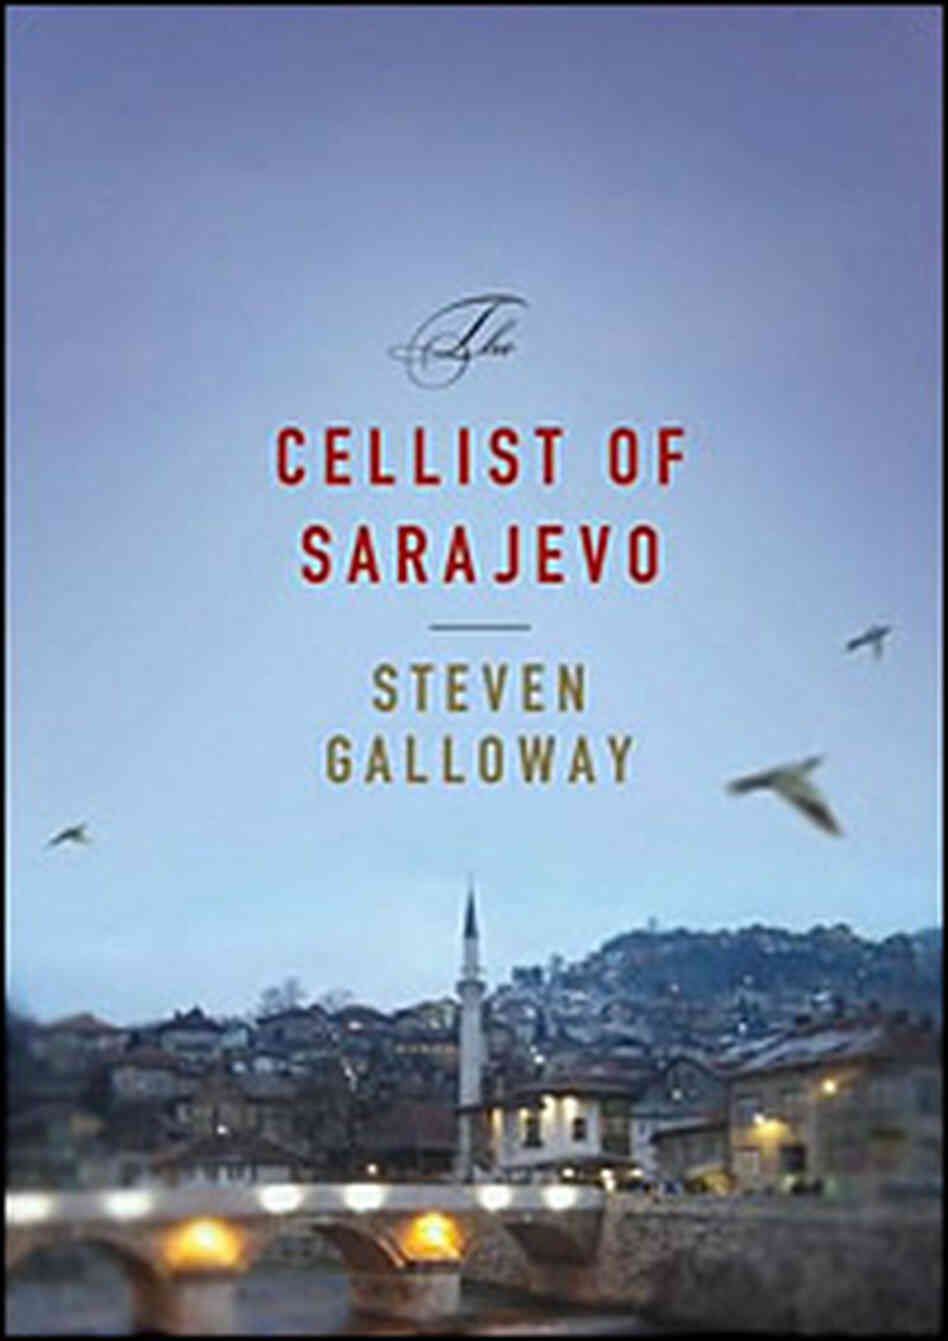 Steven Galloway's 'The Cellist of Sarajevo'